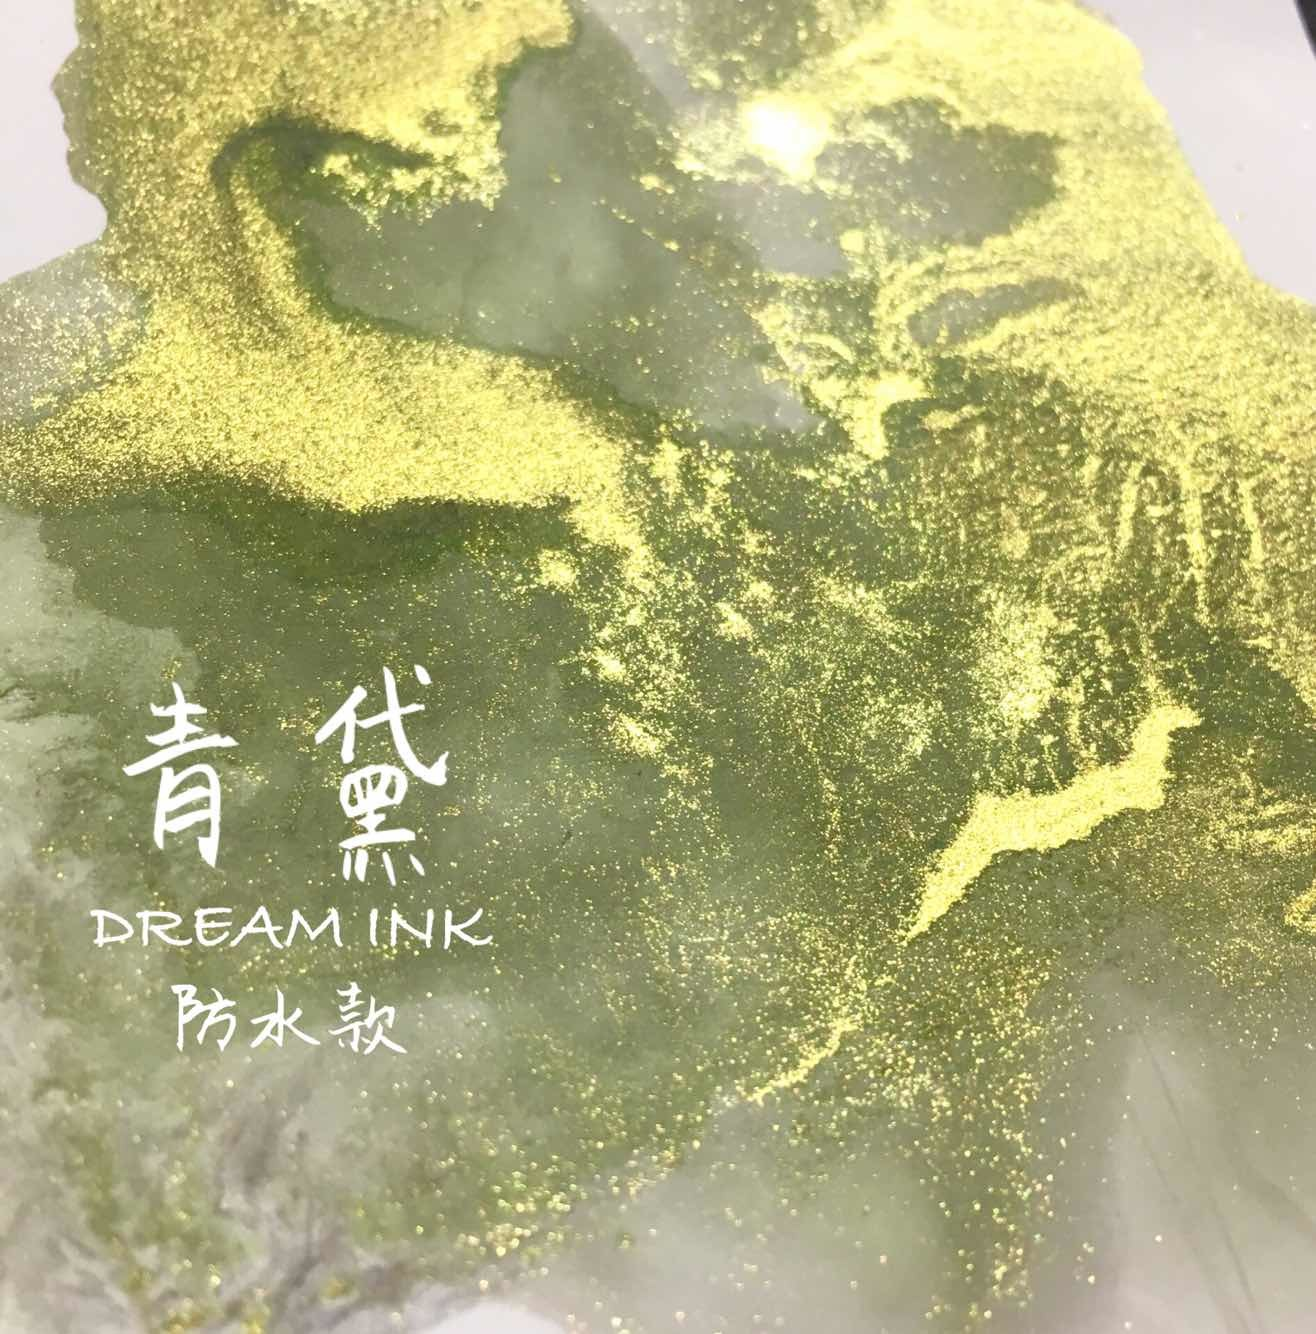 dreamink - qingdai sample 1.jpg